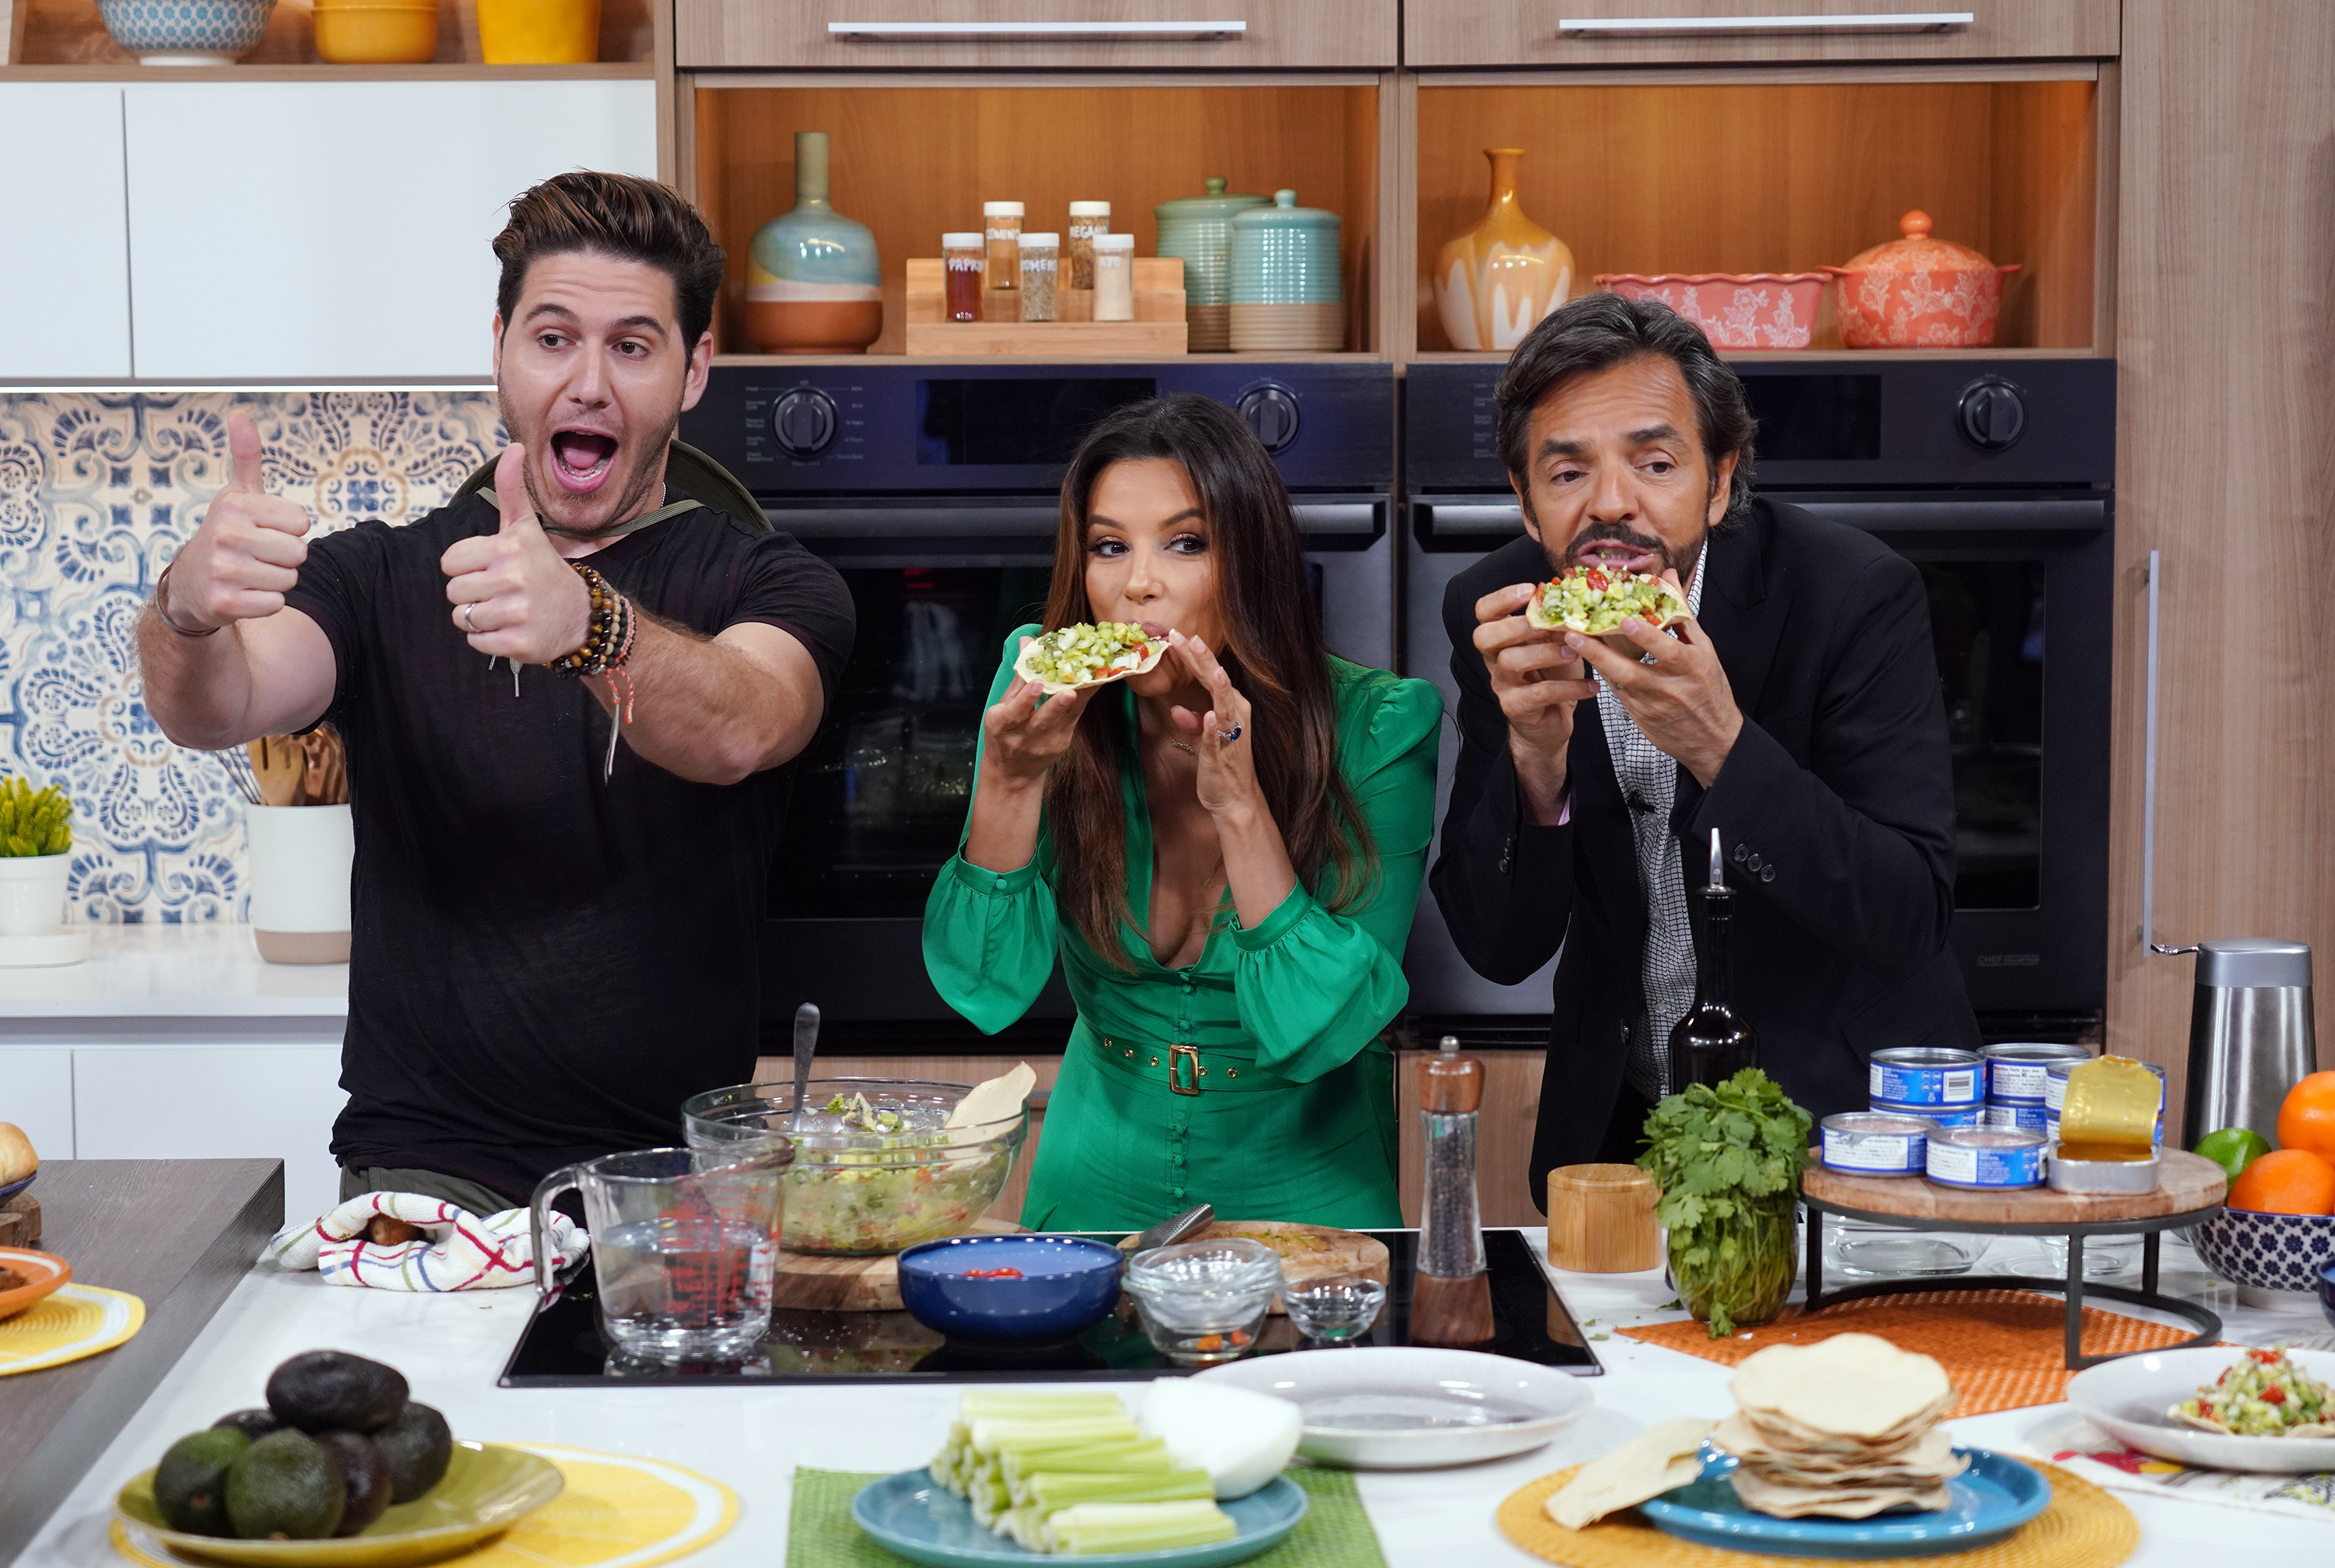 Eva Longoria, Eugenio Derbez y chef James un nuevo dia dora the explorer